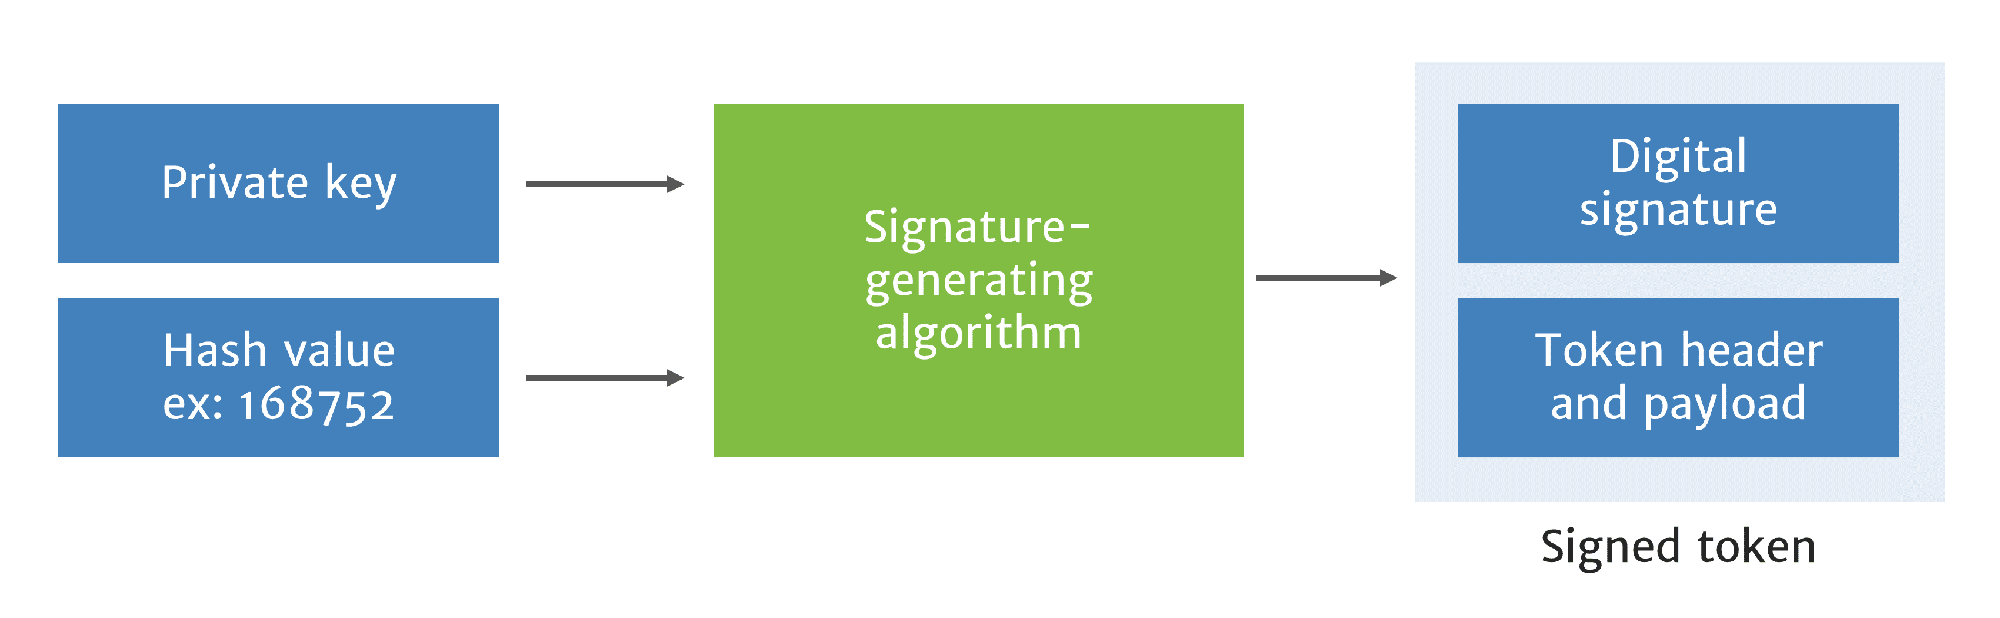 Creating digital signature with signature generation algorithm